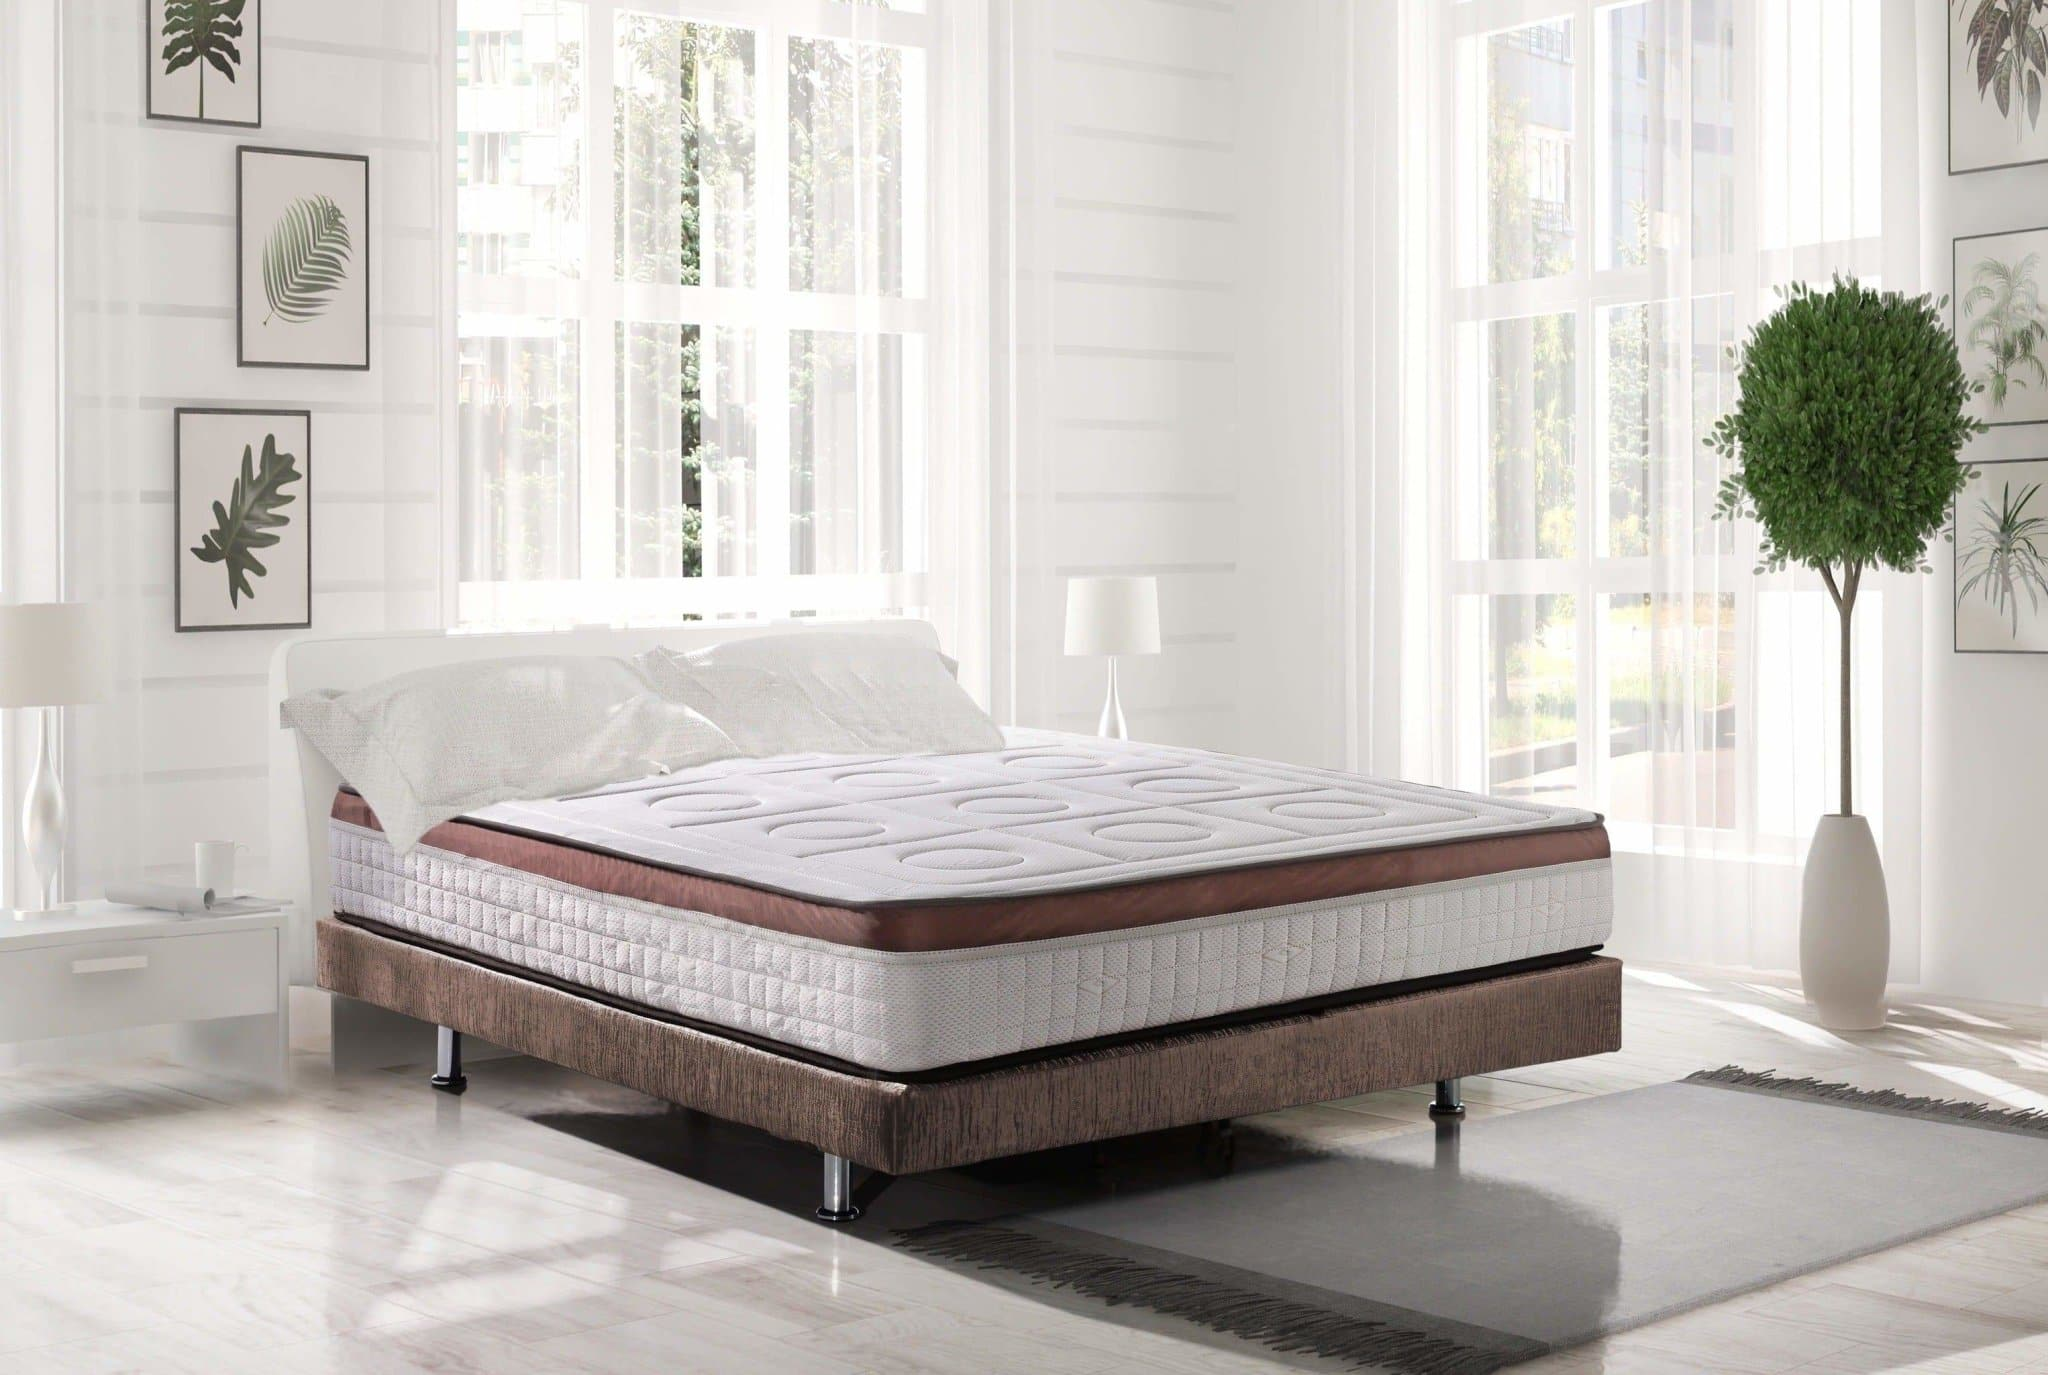 Toscana Deluxe 21 - 3 - BEZEN MATTRESS AND HEALTH